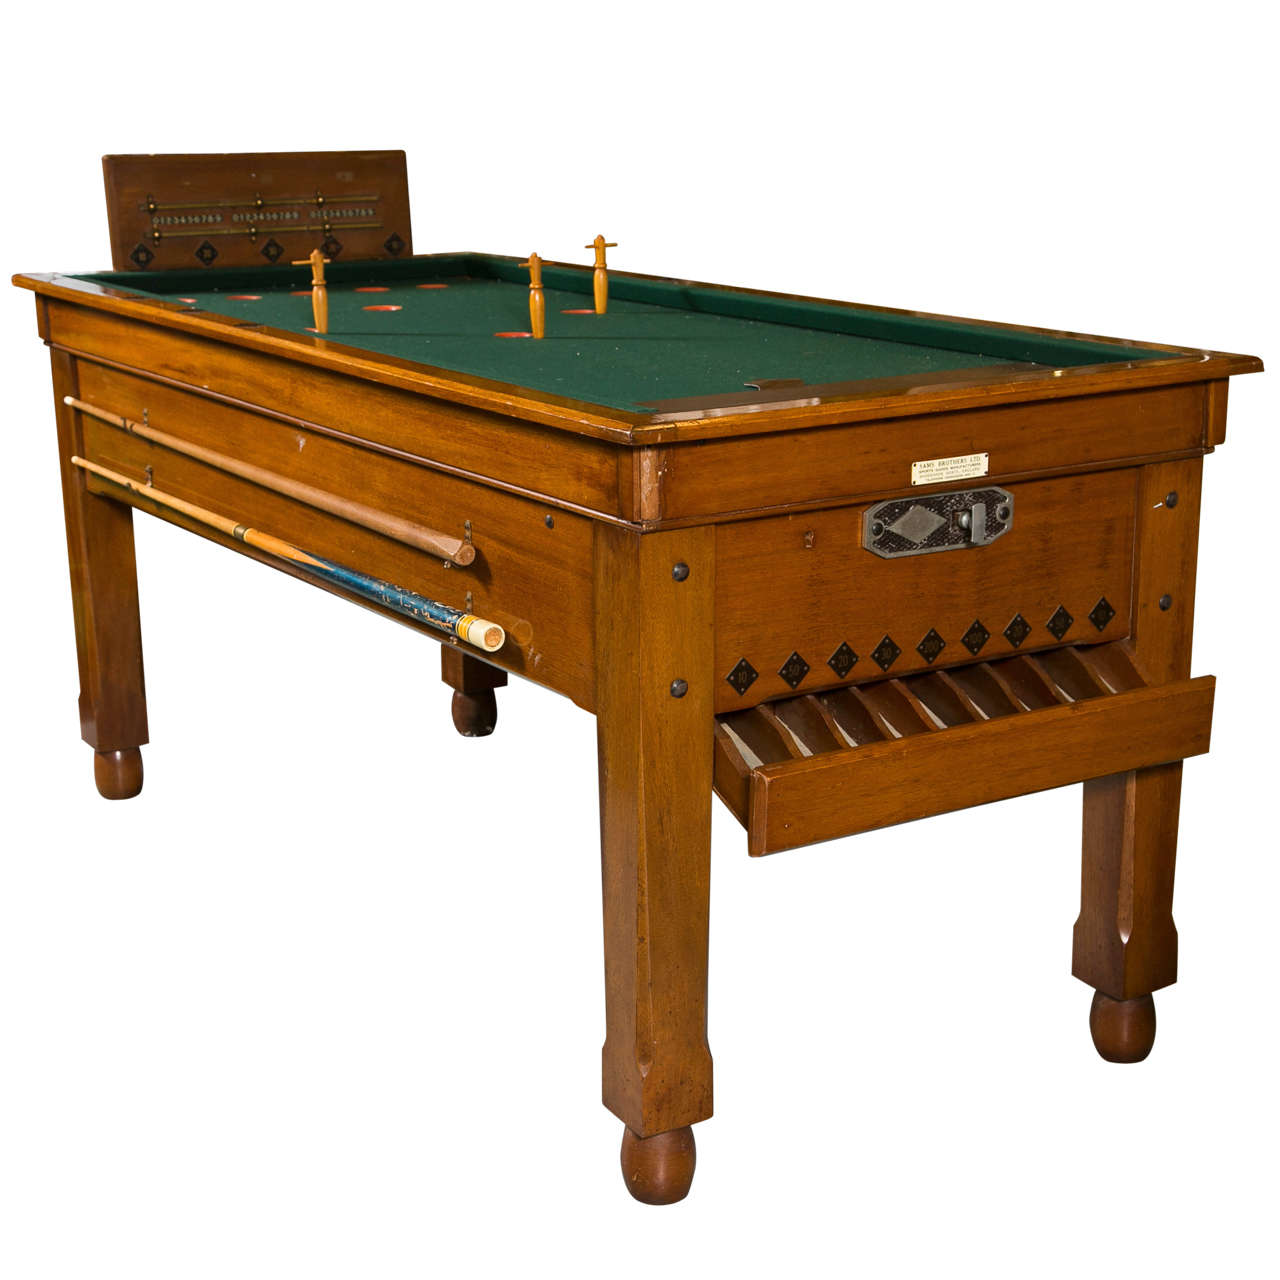 Antuqe English Bar Billiards Table At Stdibs - Bar and pool table near me